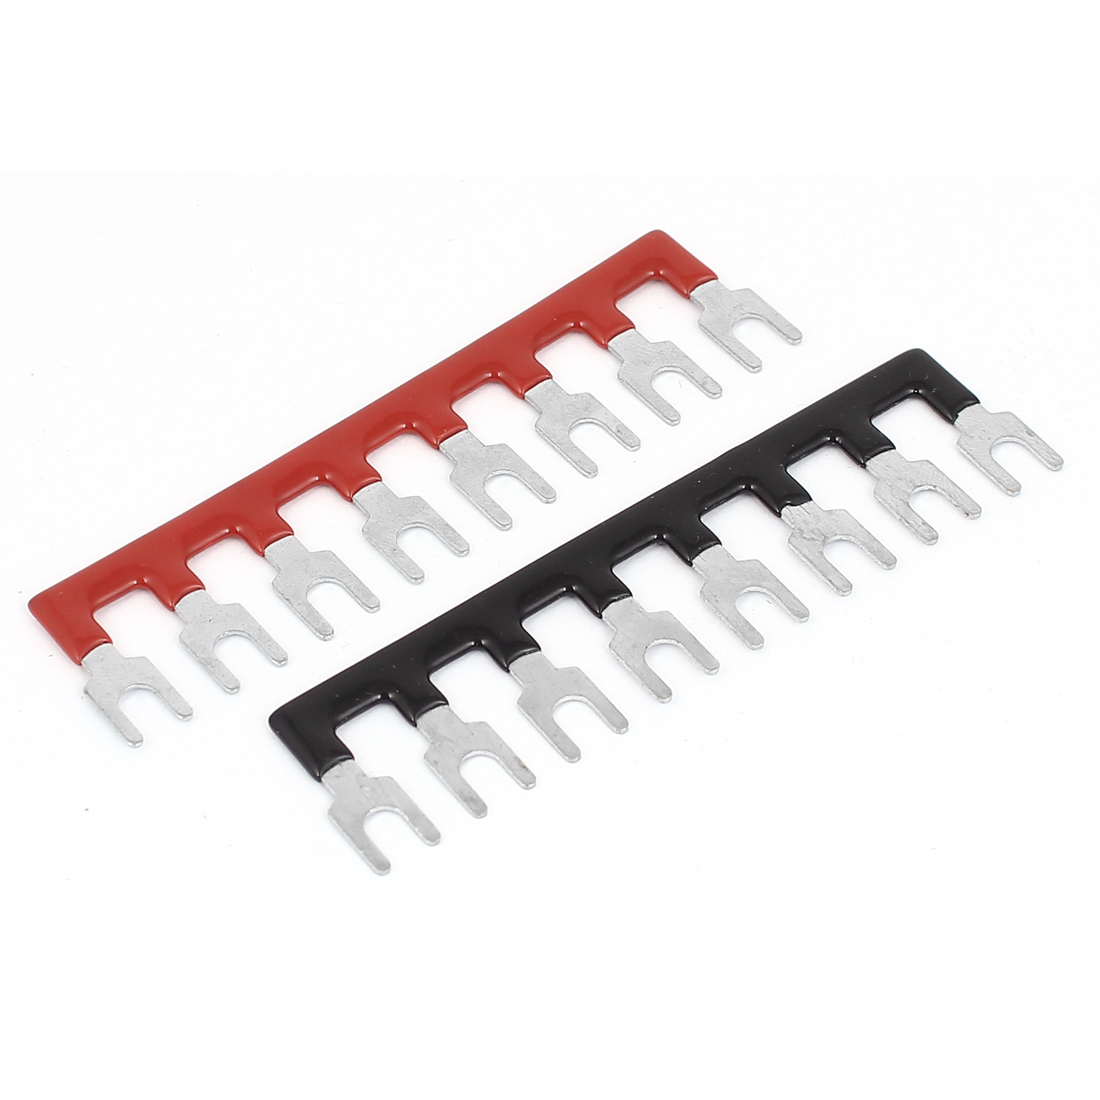 TB1508 400V 10A Fork Type 8 Positions Pre Insulated Terminal Stripe Block 2Pcs